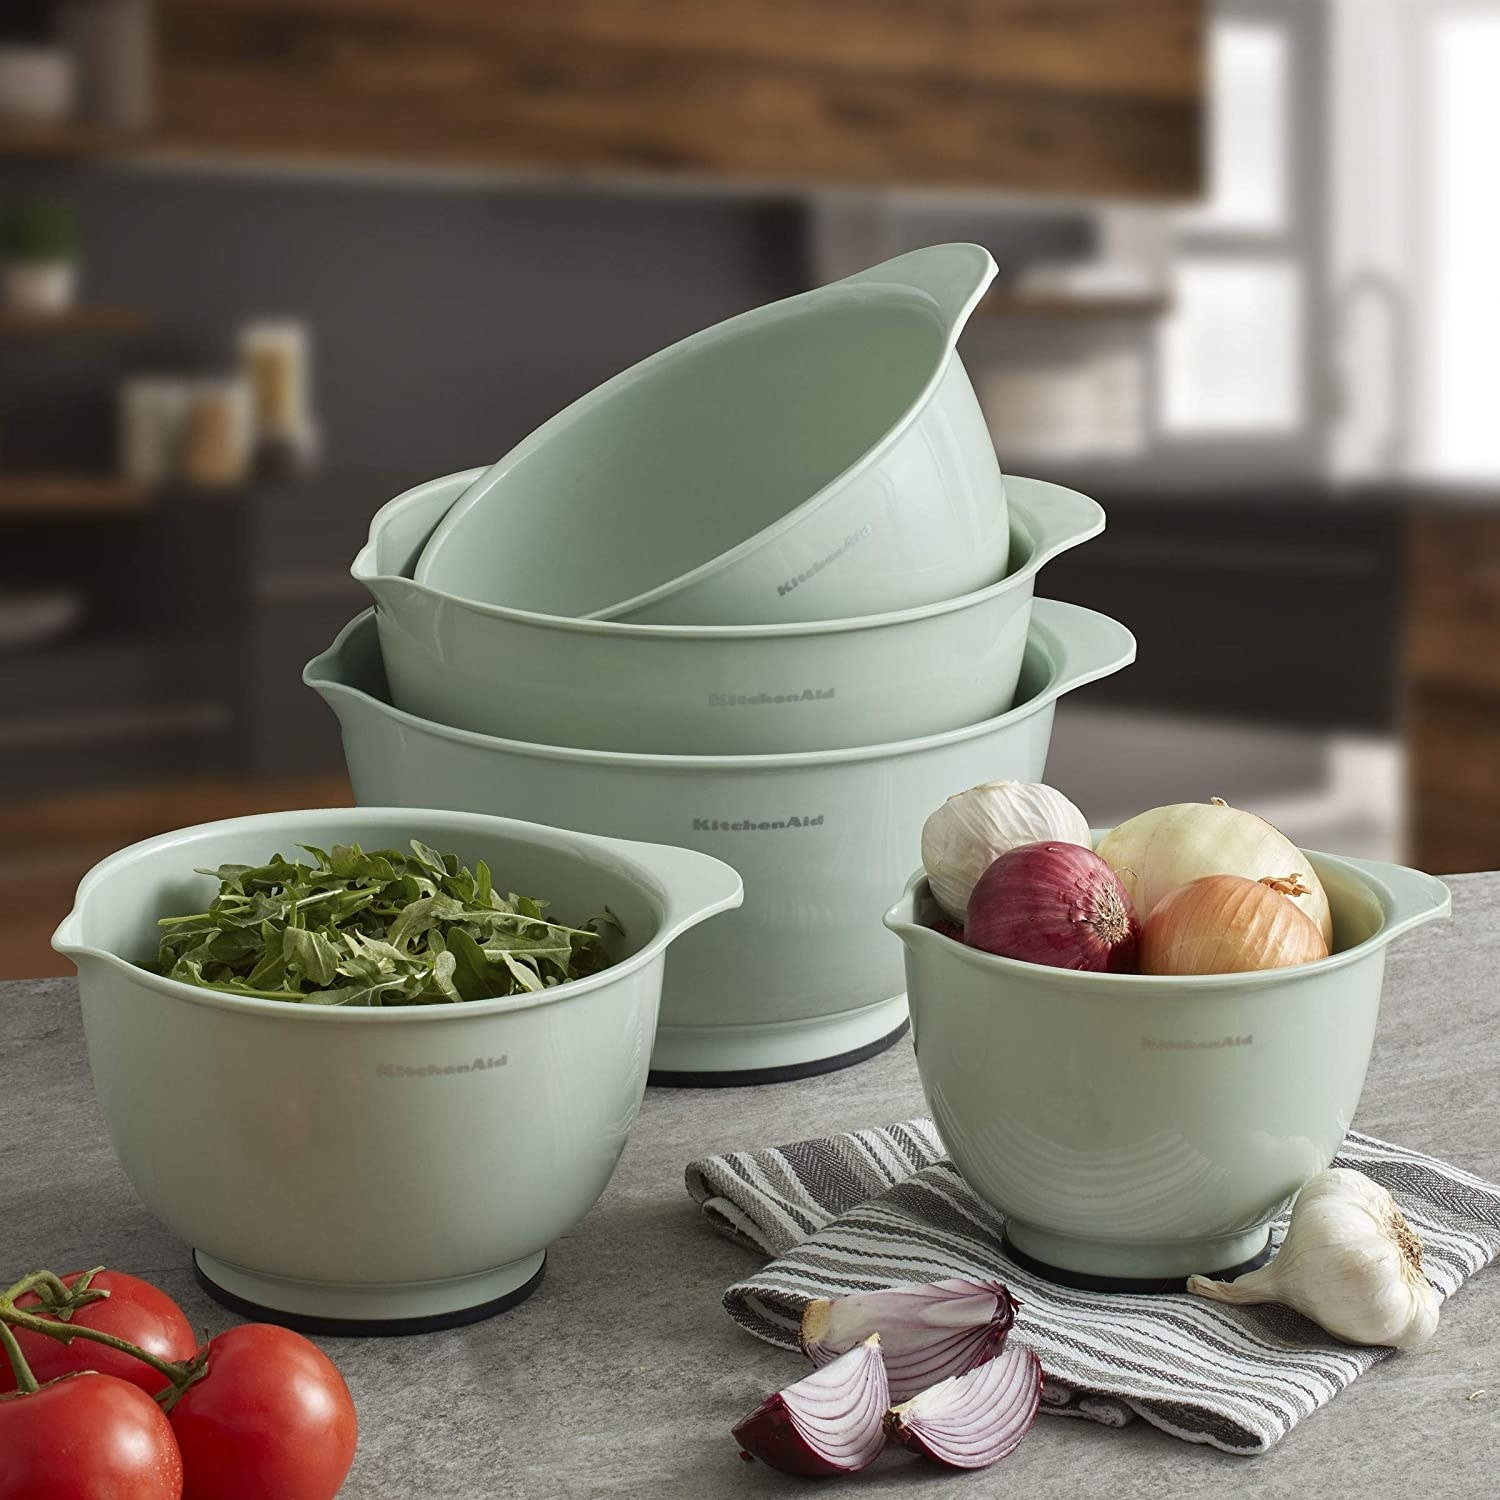 five kitchenaid mixing bowls with food in them